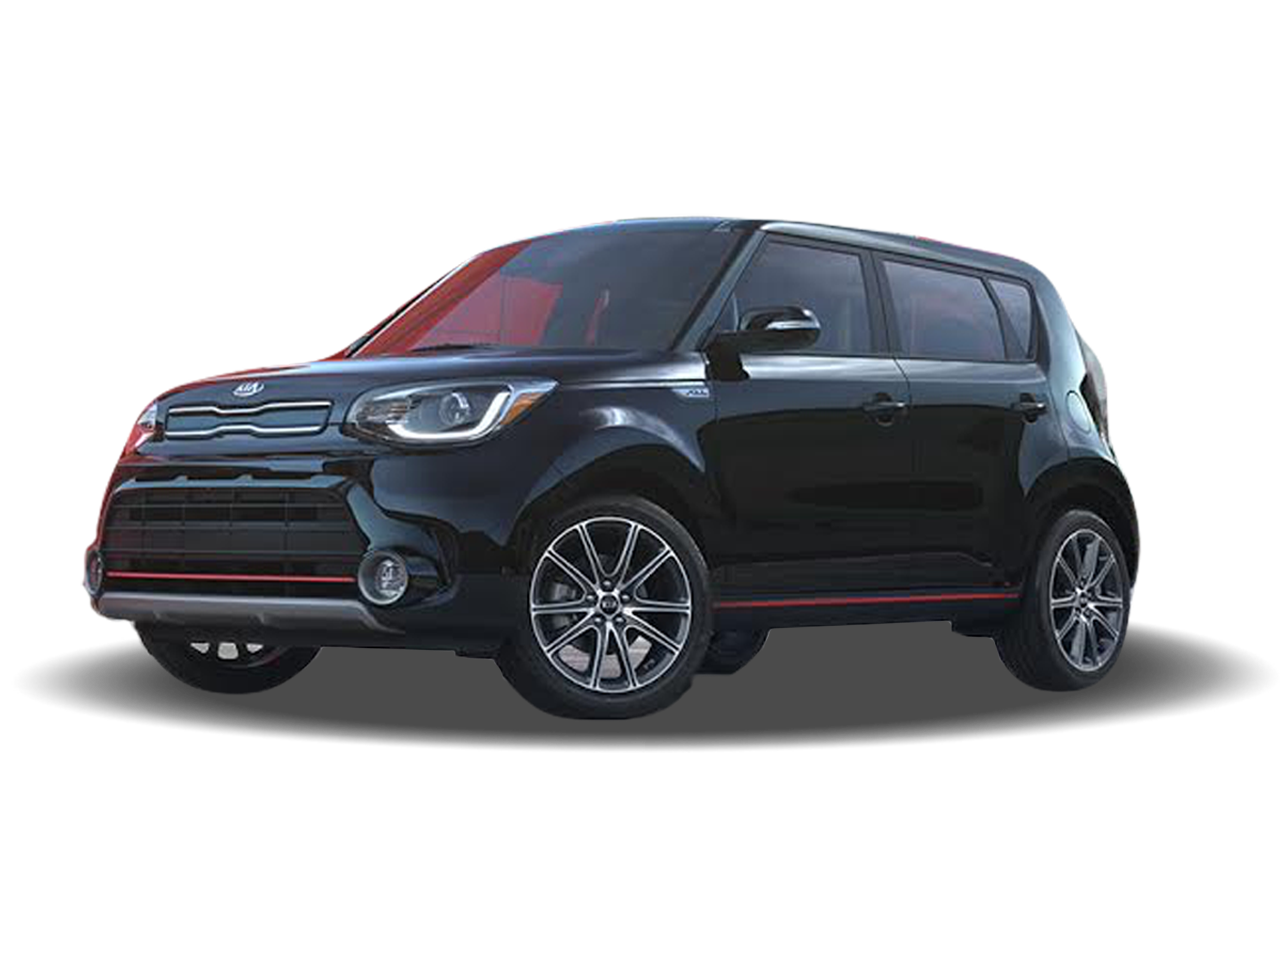 24 New 2019 Kia Soul Price And Release Date